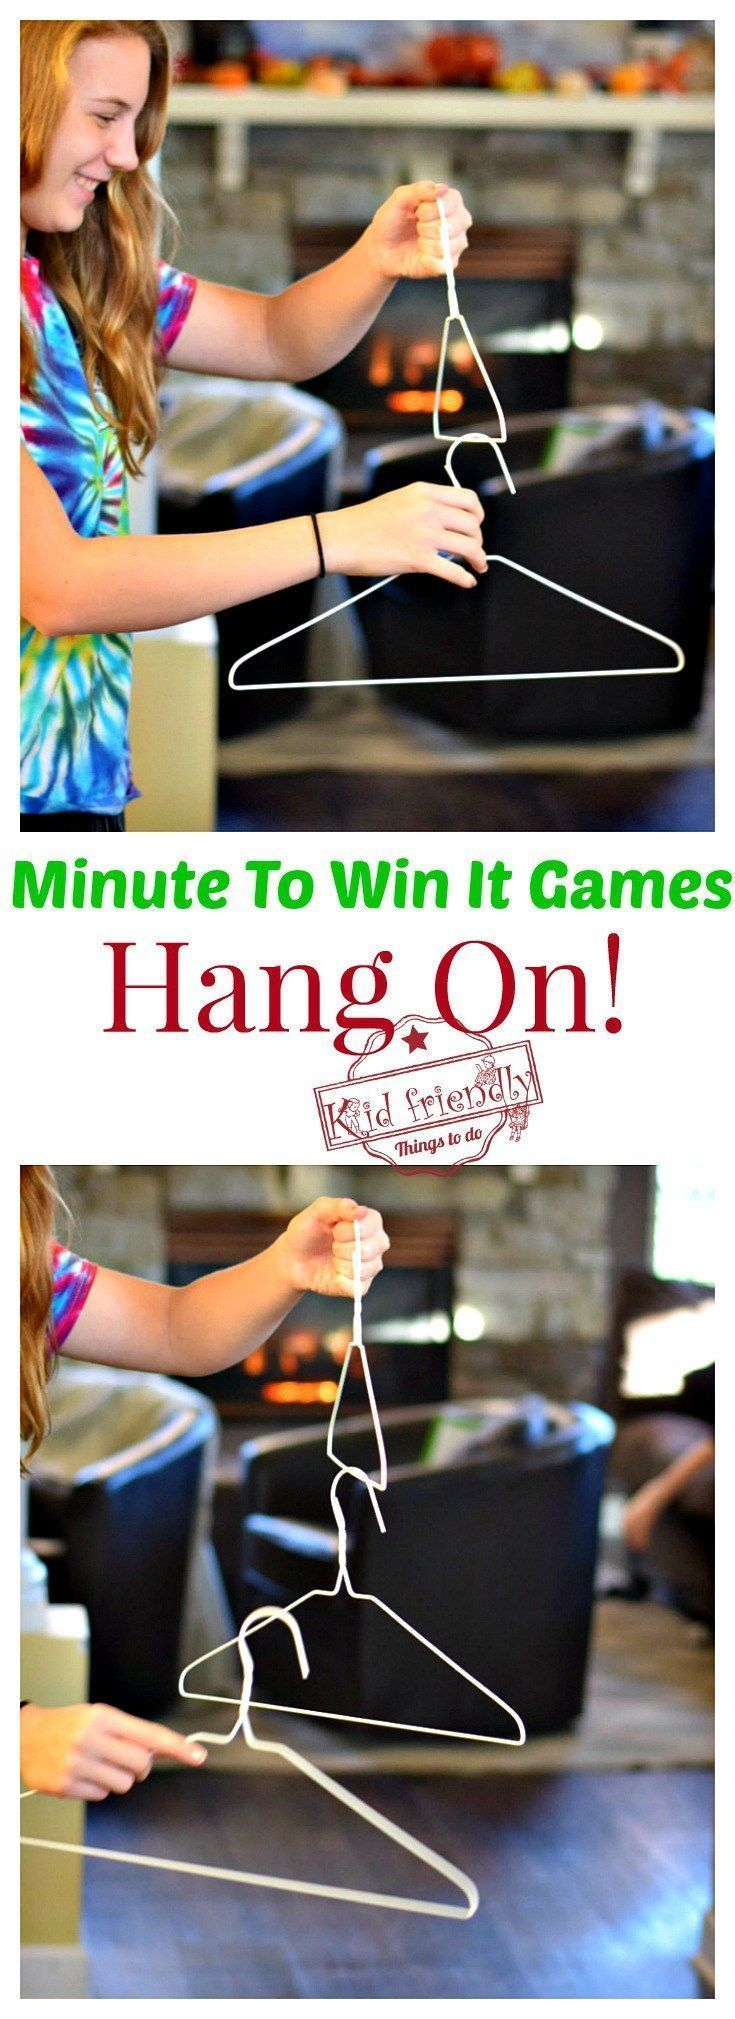 Awesome Minute To Win It Games that are Great for Kids